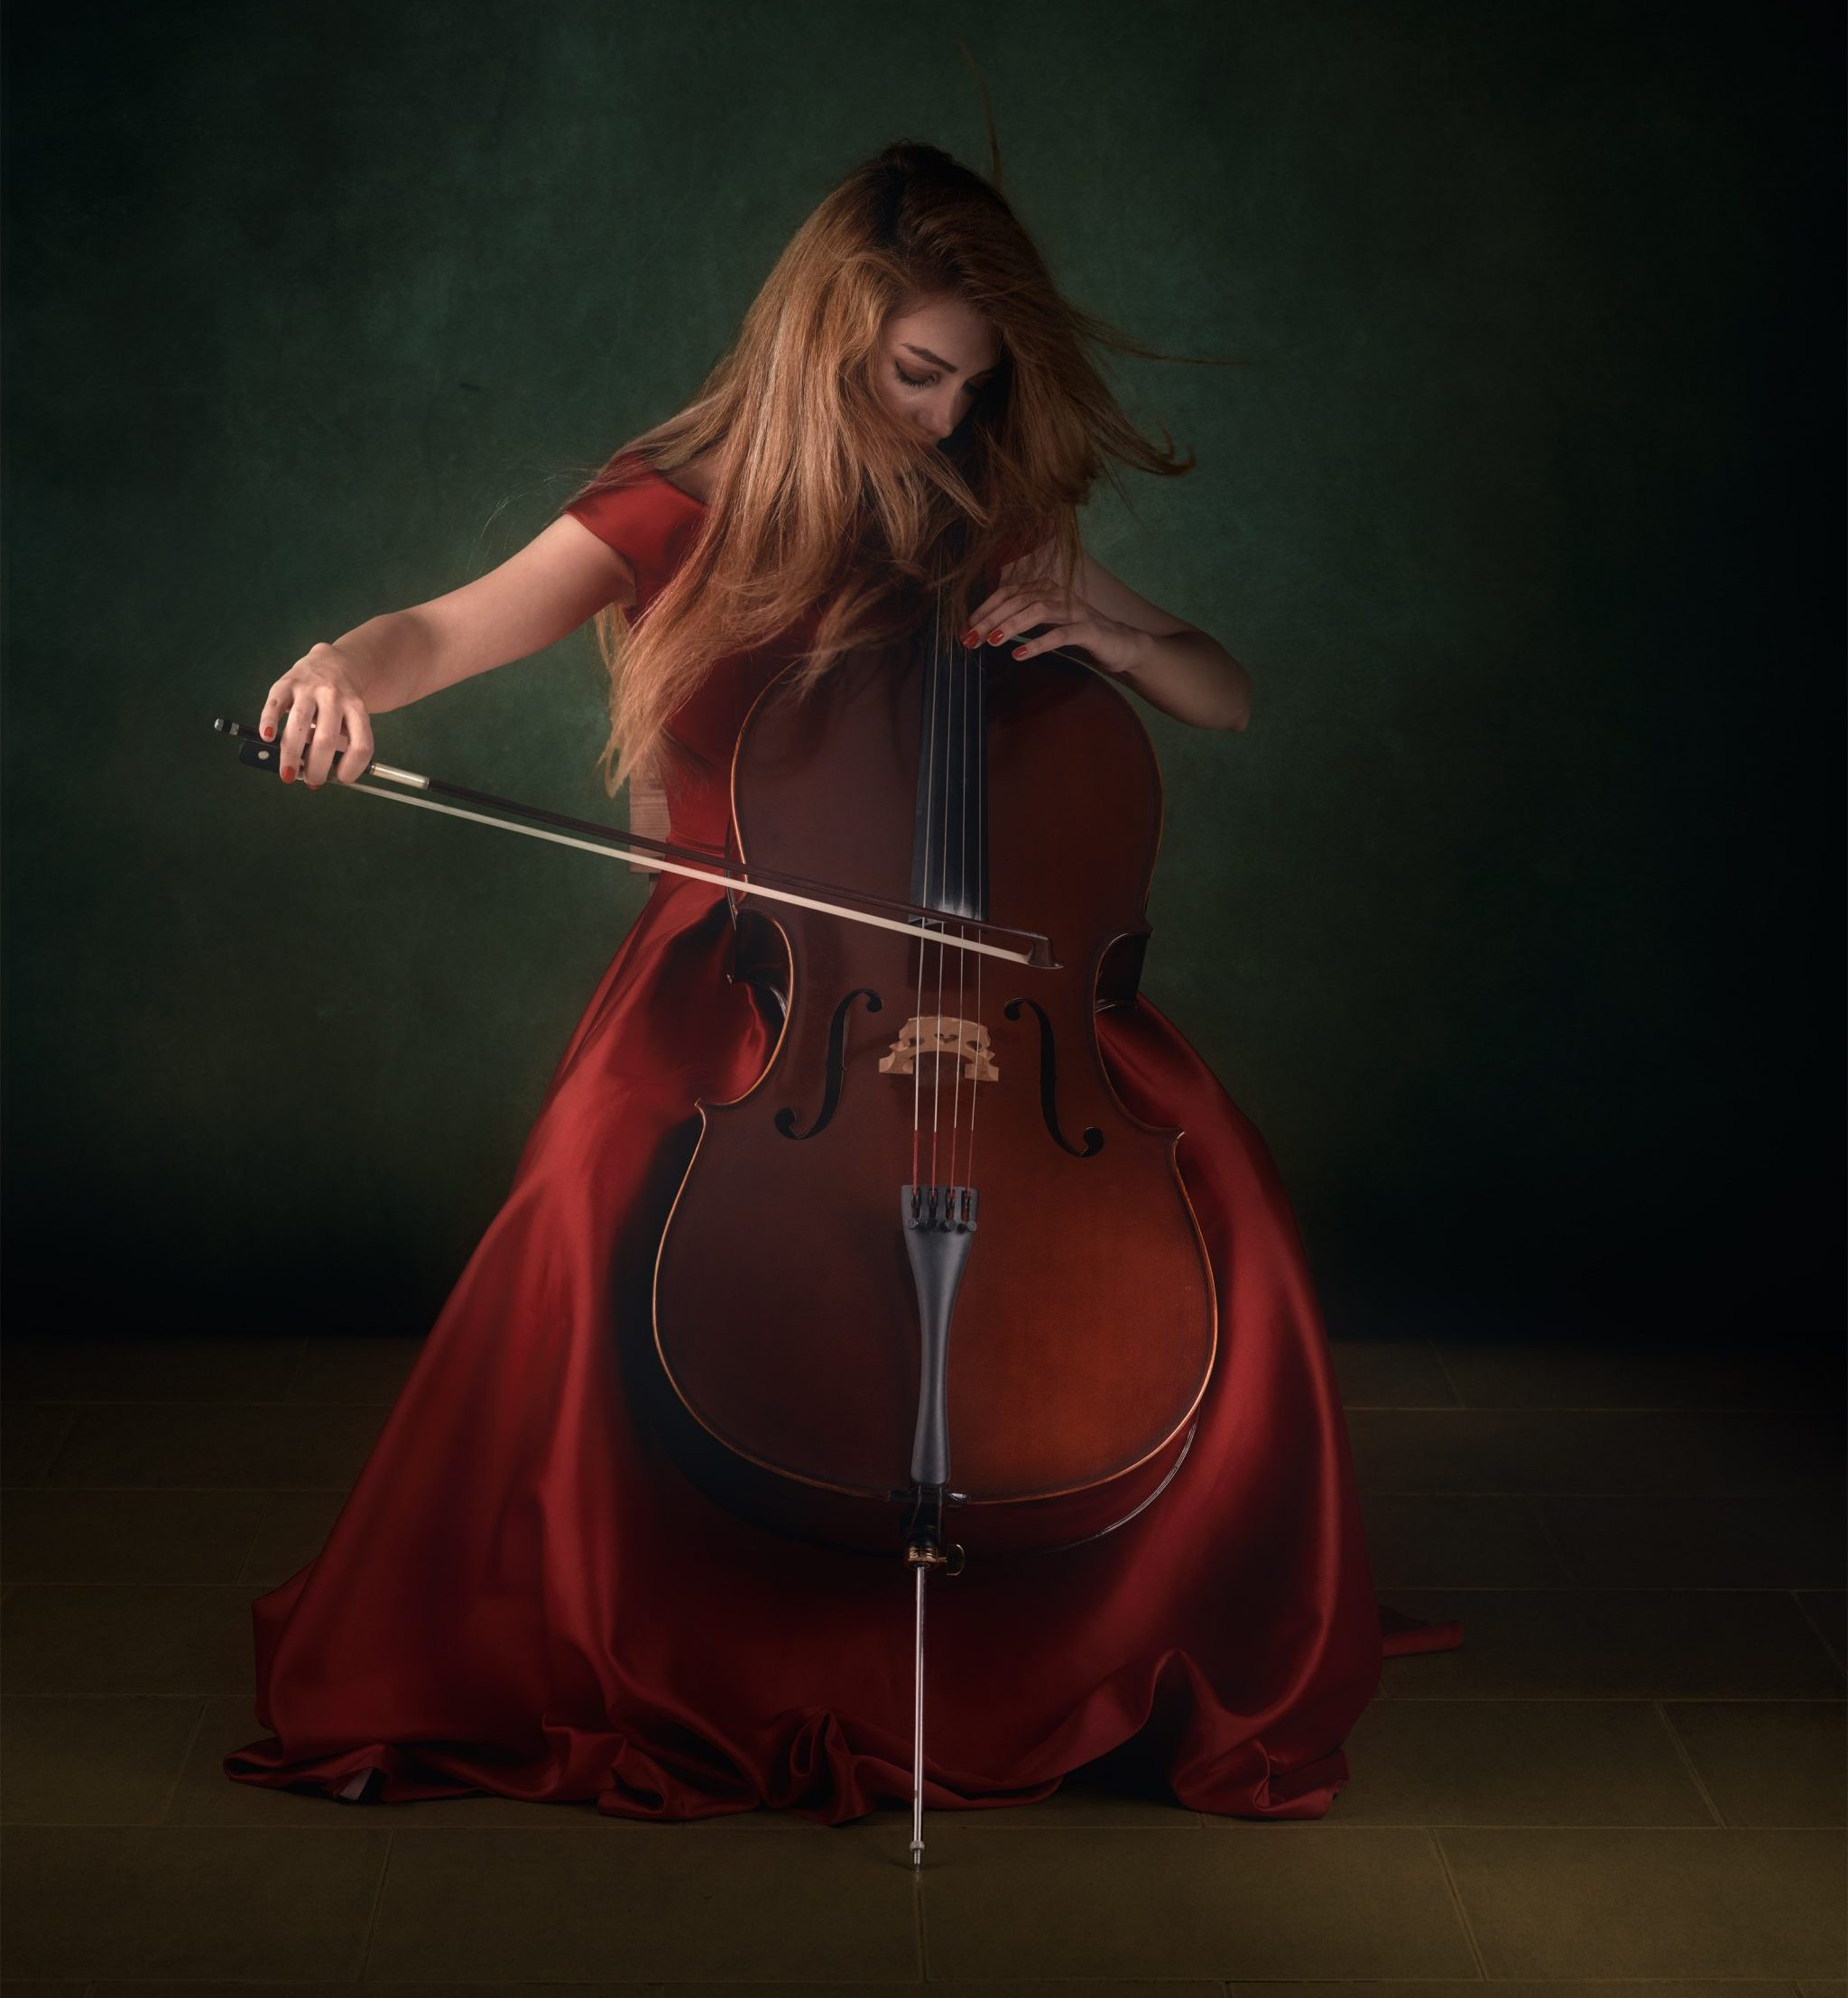 Artistic cello